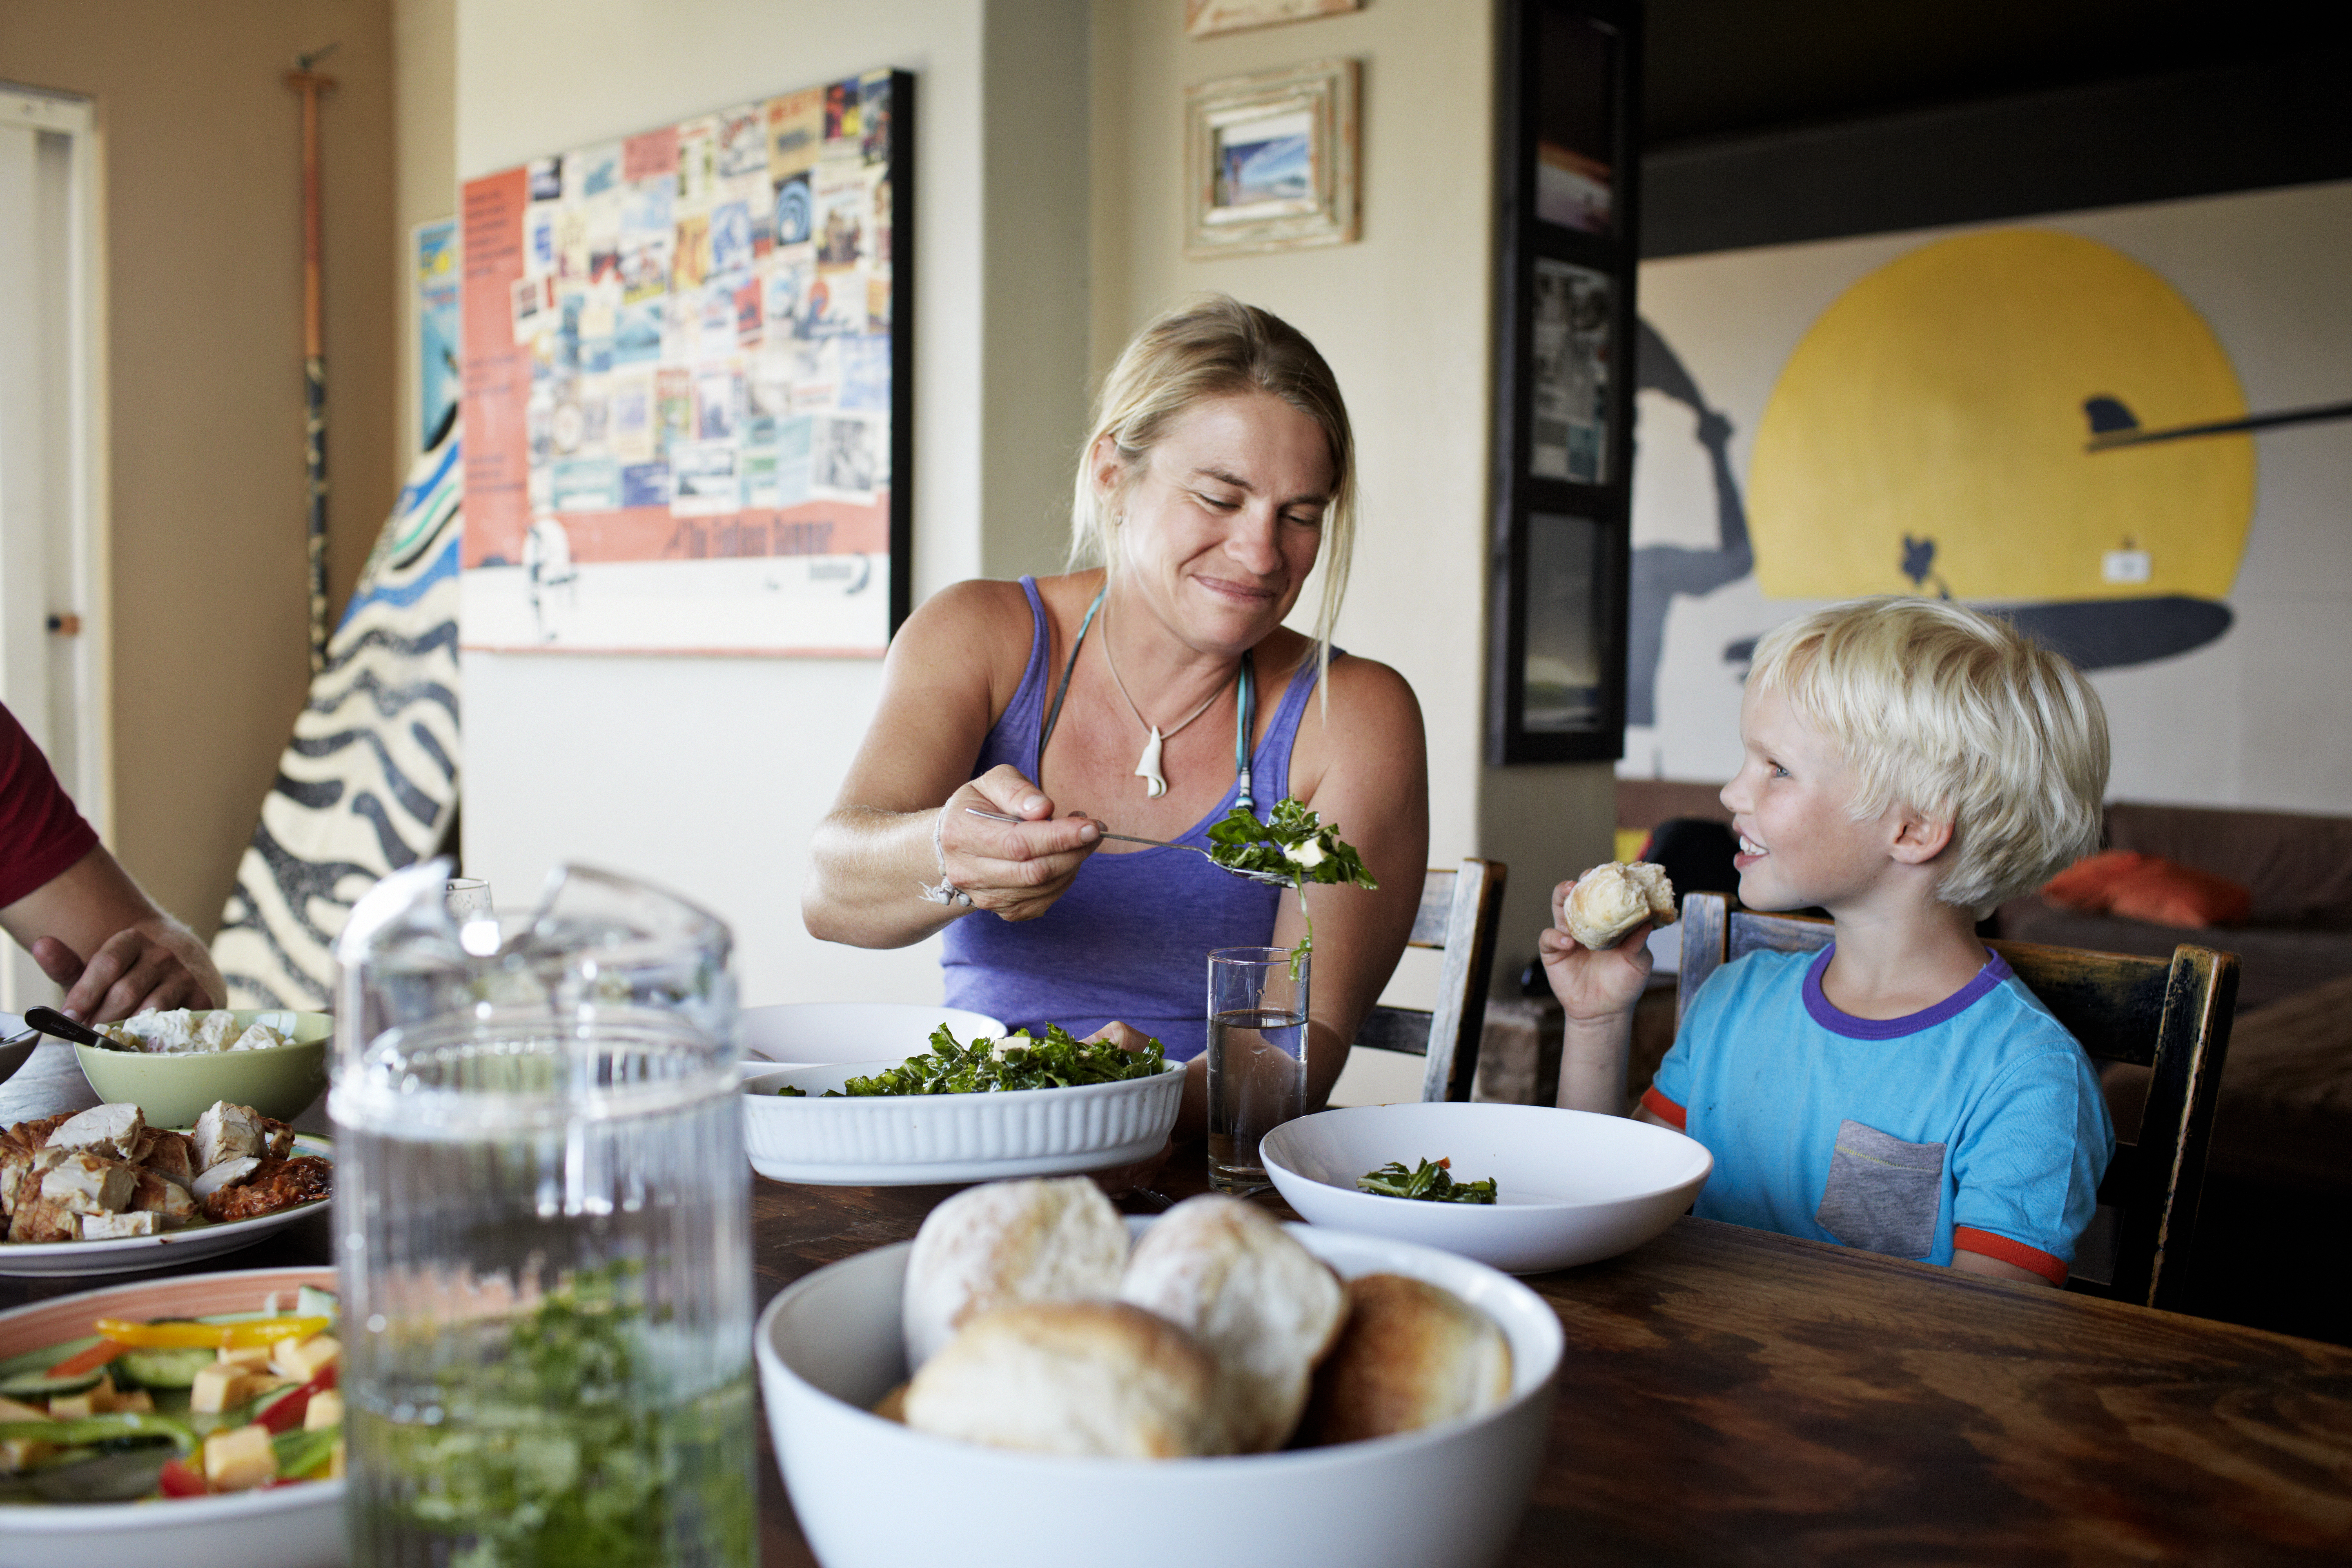 Eat dinner at the table as a family